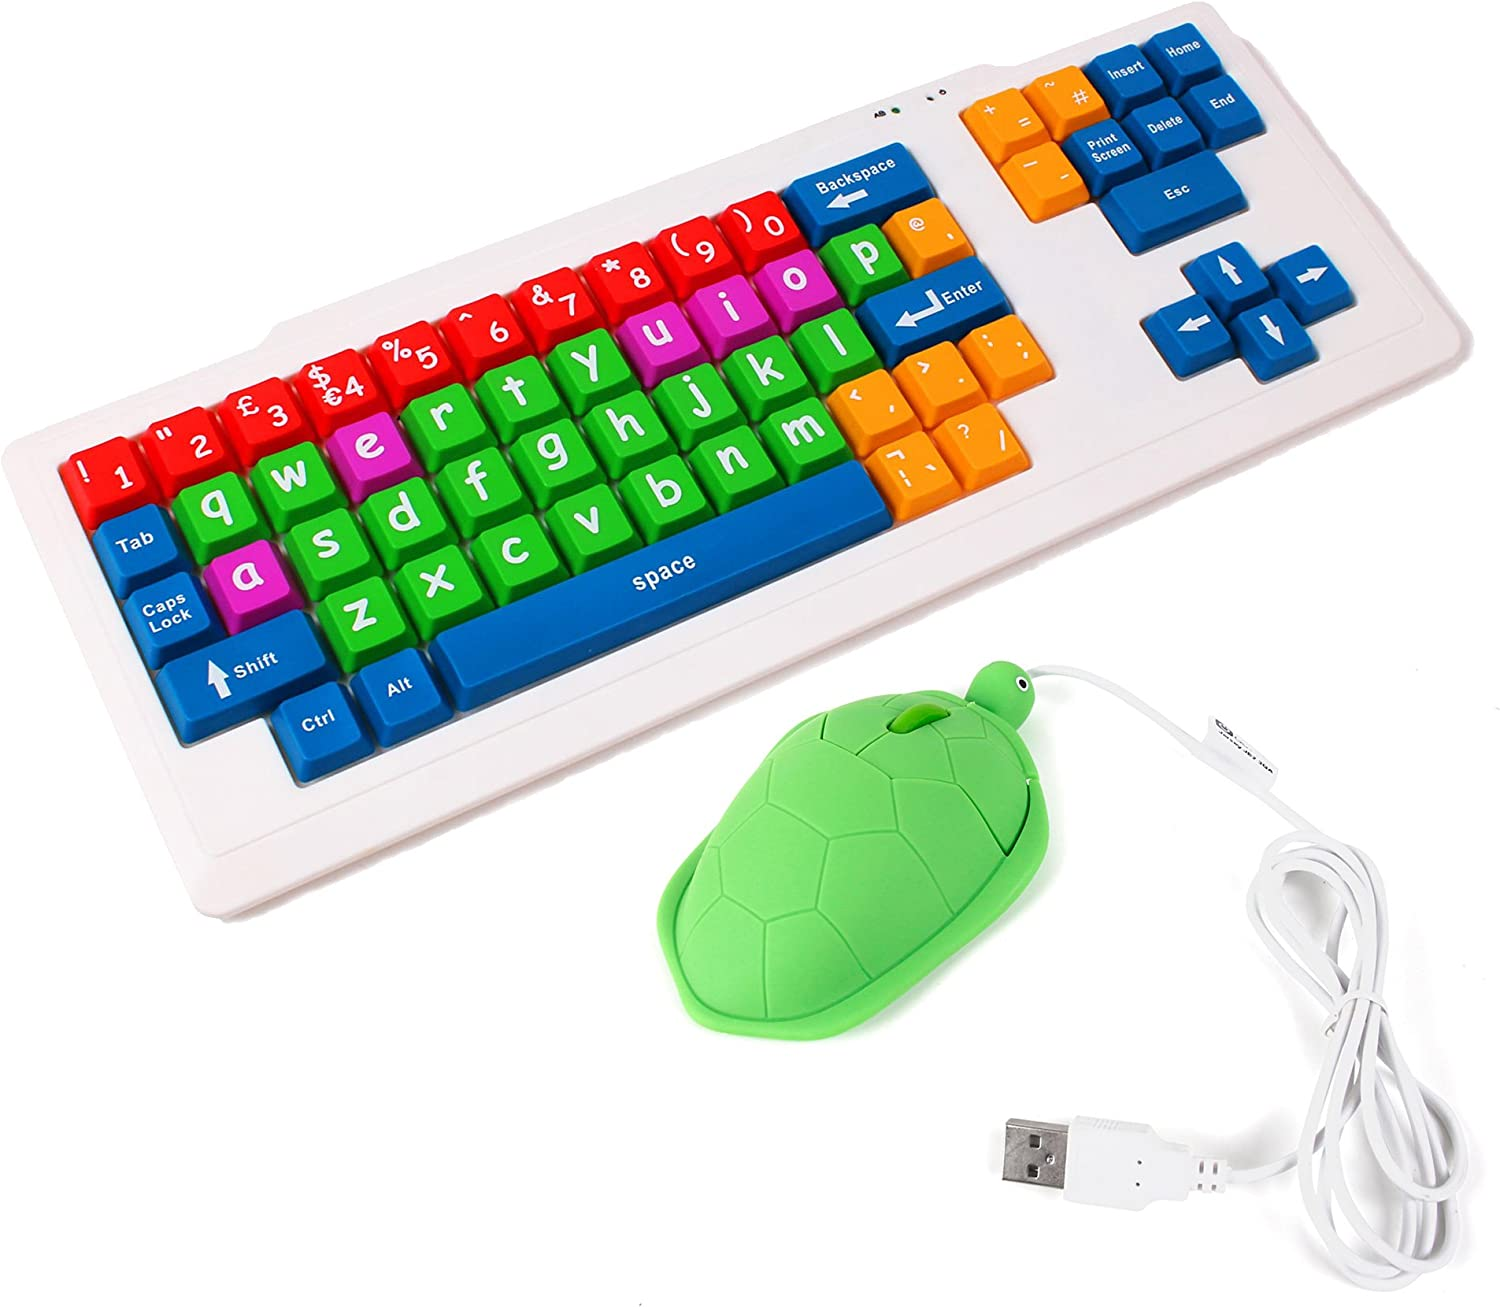 DURAGADGET Large Colourful Childrens/Special Needs/Sight impaired PC Keyboard PS2/USB - Great for Teaching/Learning at Home + Fun Turtle Shaped Mouse! (Dimensions: 470 x 180 x 15mm)